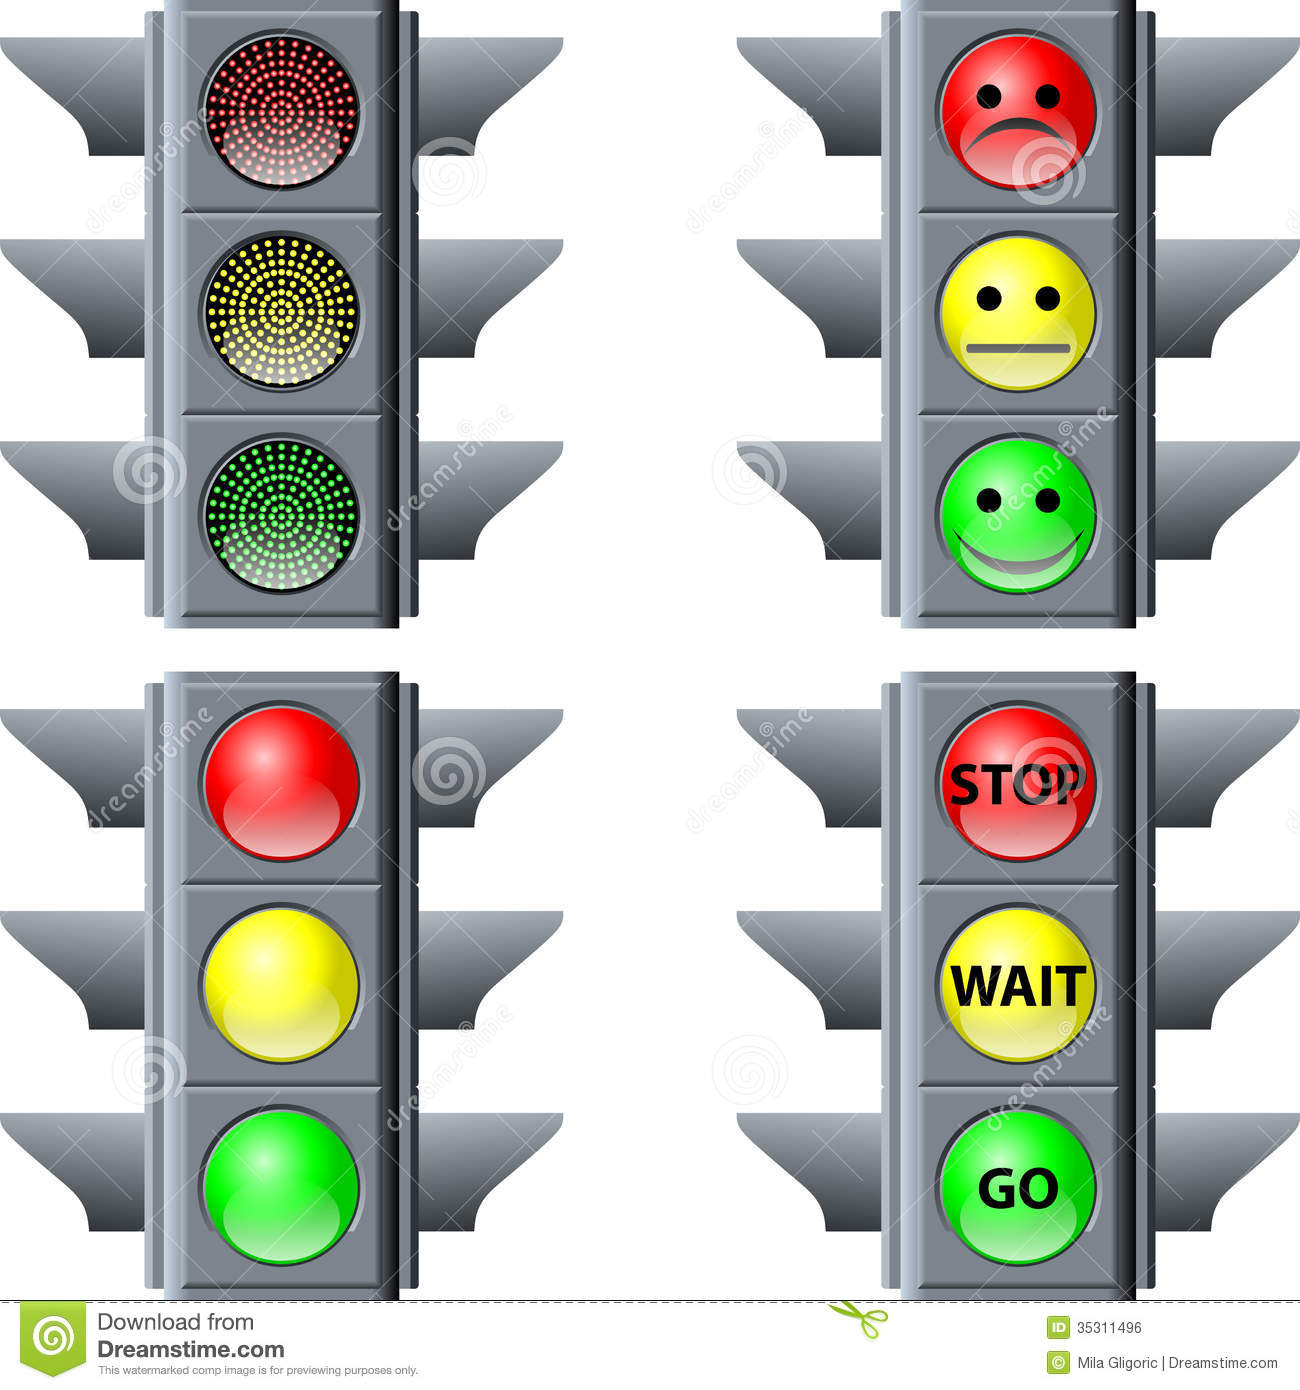 Traffic Light Royalty Free Stock Image Image 35311496